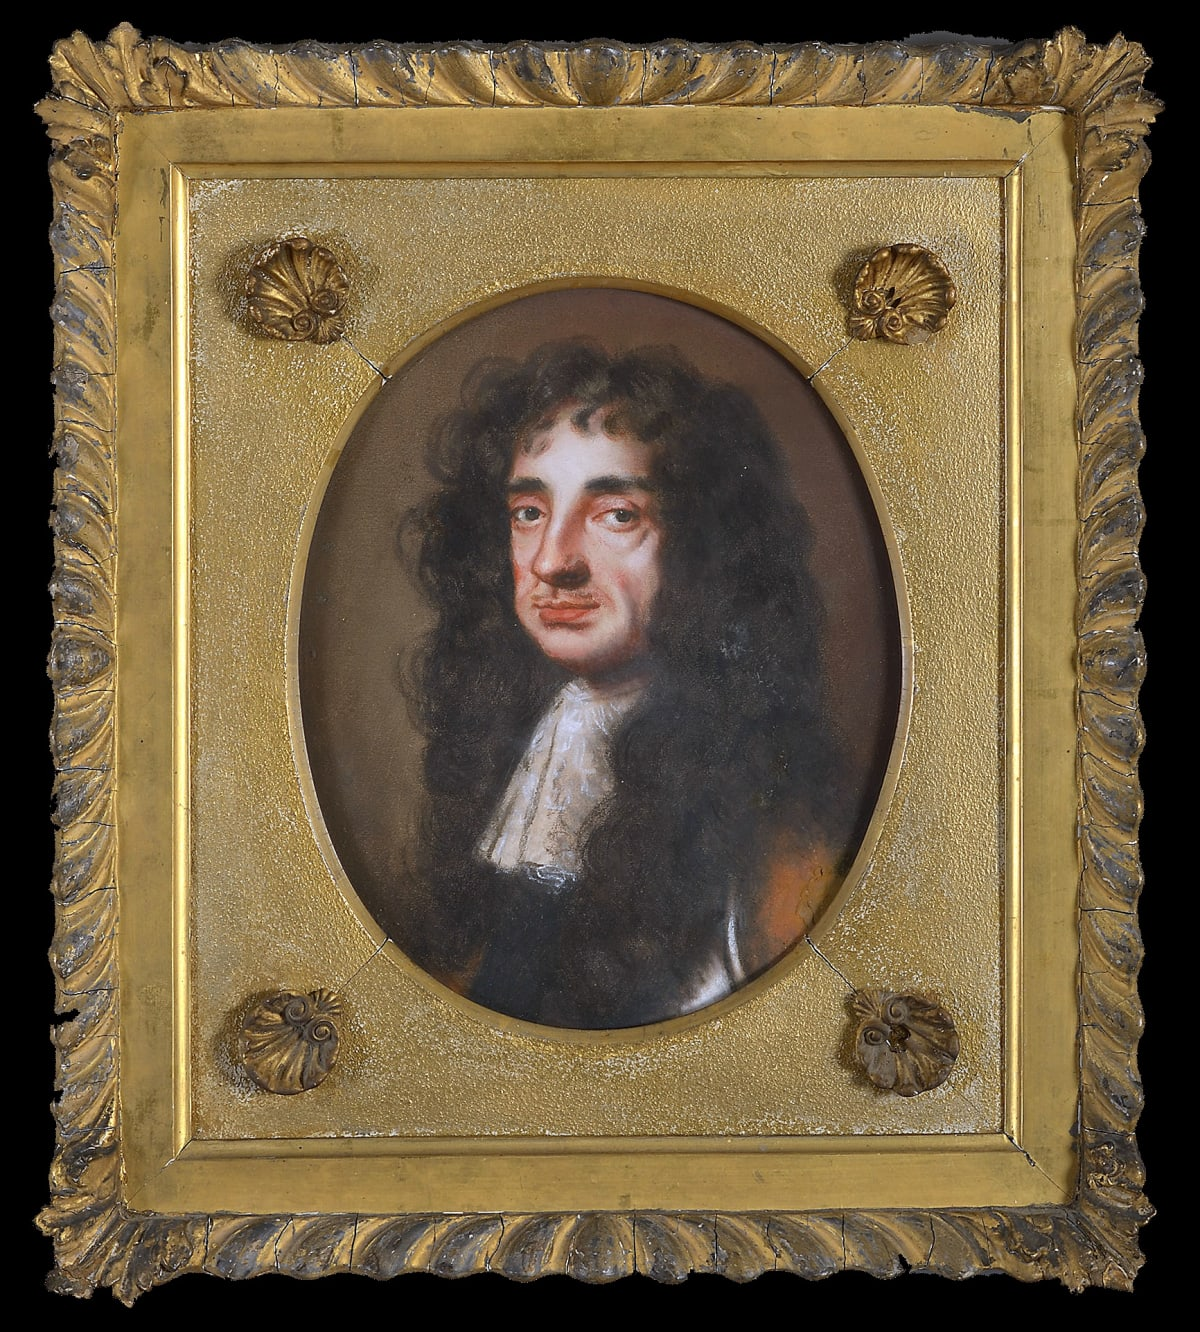 Edmund Ashfield (1640 - 1678) King Charles II (1630 - 1685), c.1675 Pastel, with gouache, on paper over canvas Framed dimensions: 17 x 15 in. (43.18 x 38.1 cm.)